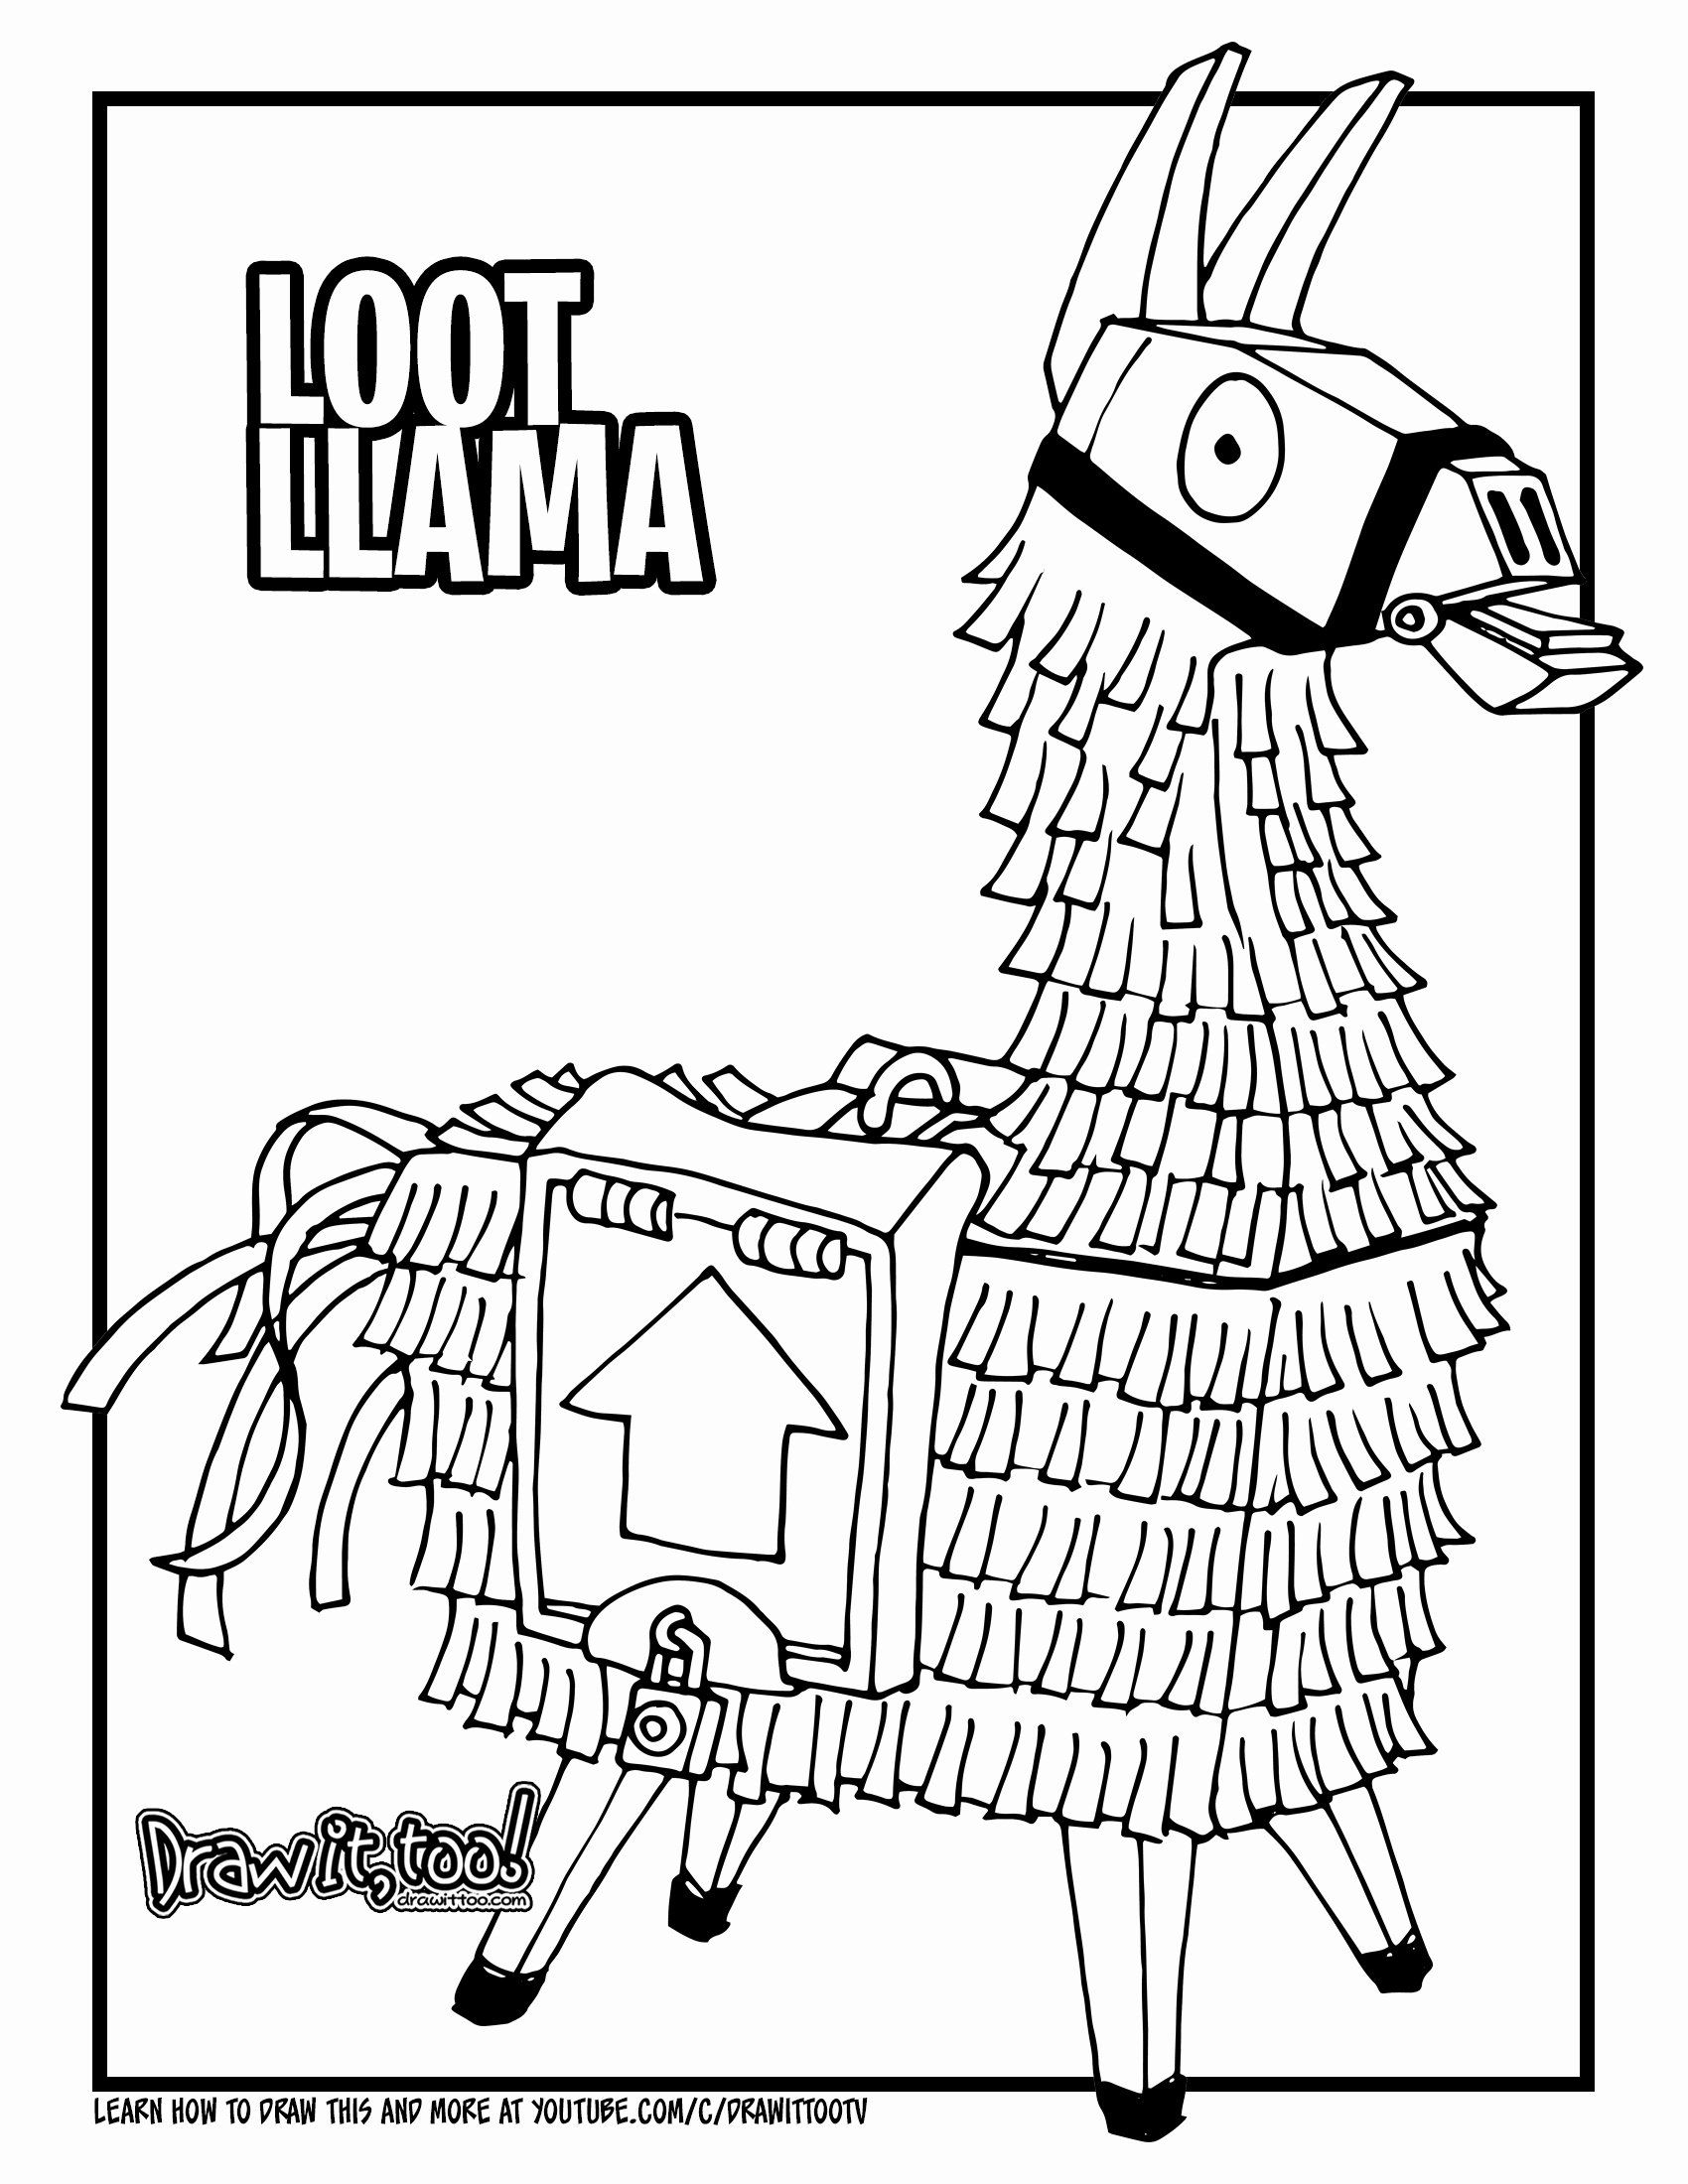 Fortnite Llama Coloring Page Inspirational How To Draw The Loot